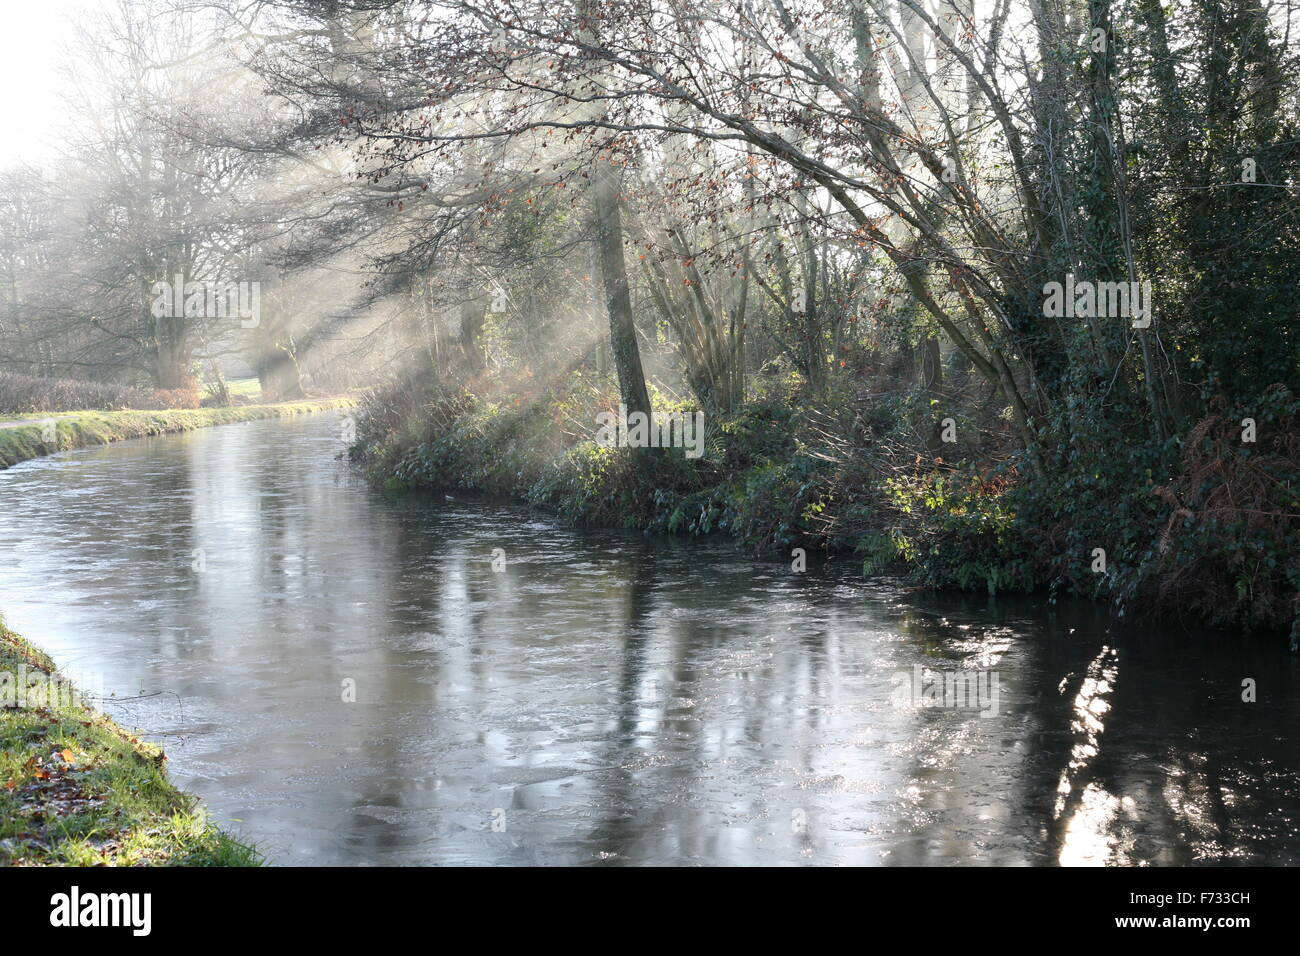 Early morning on the Monmouthshire Brecon canal.The water is frozen and sunlight filters through the mist. Stock Photo